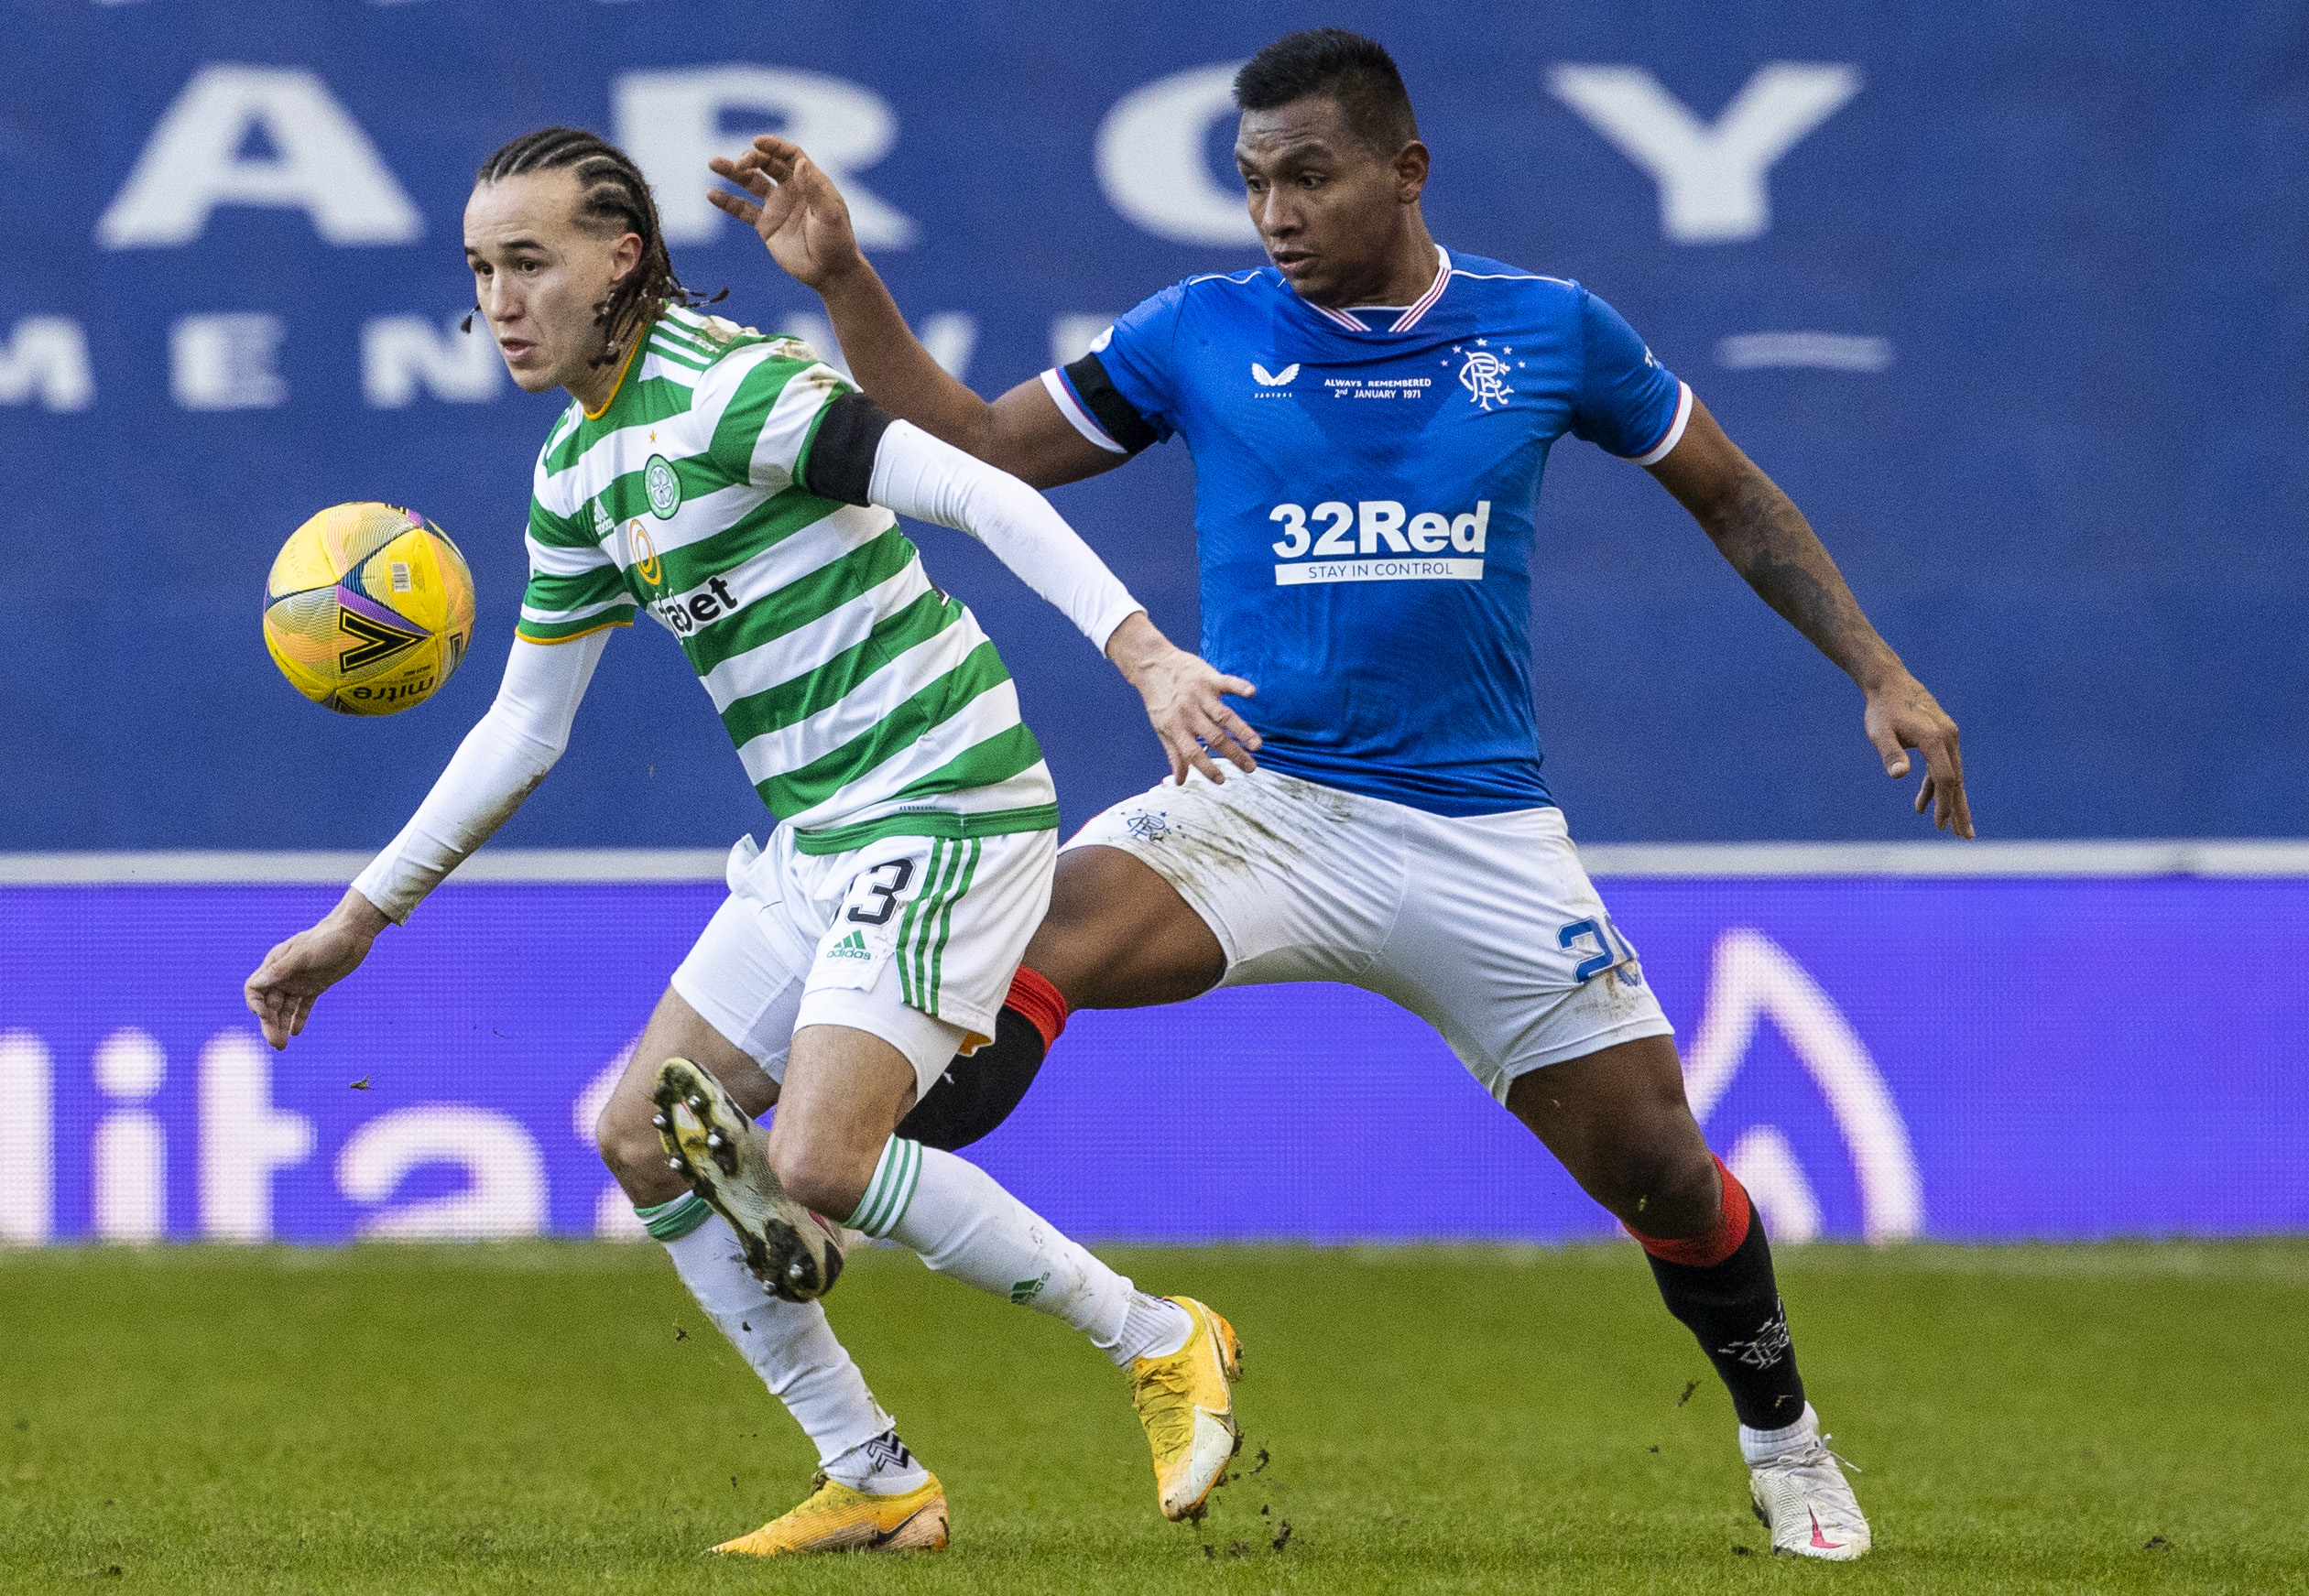 Celtic bossed Rangers at Ibrox